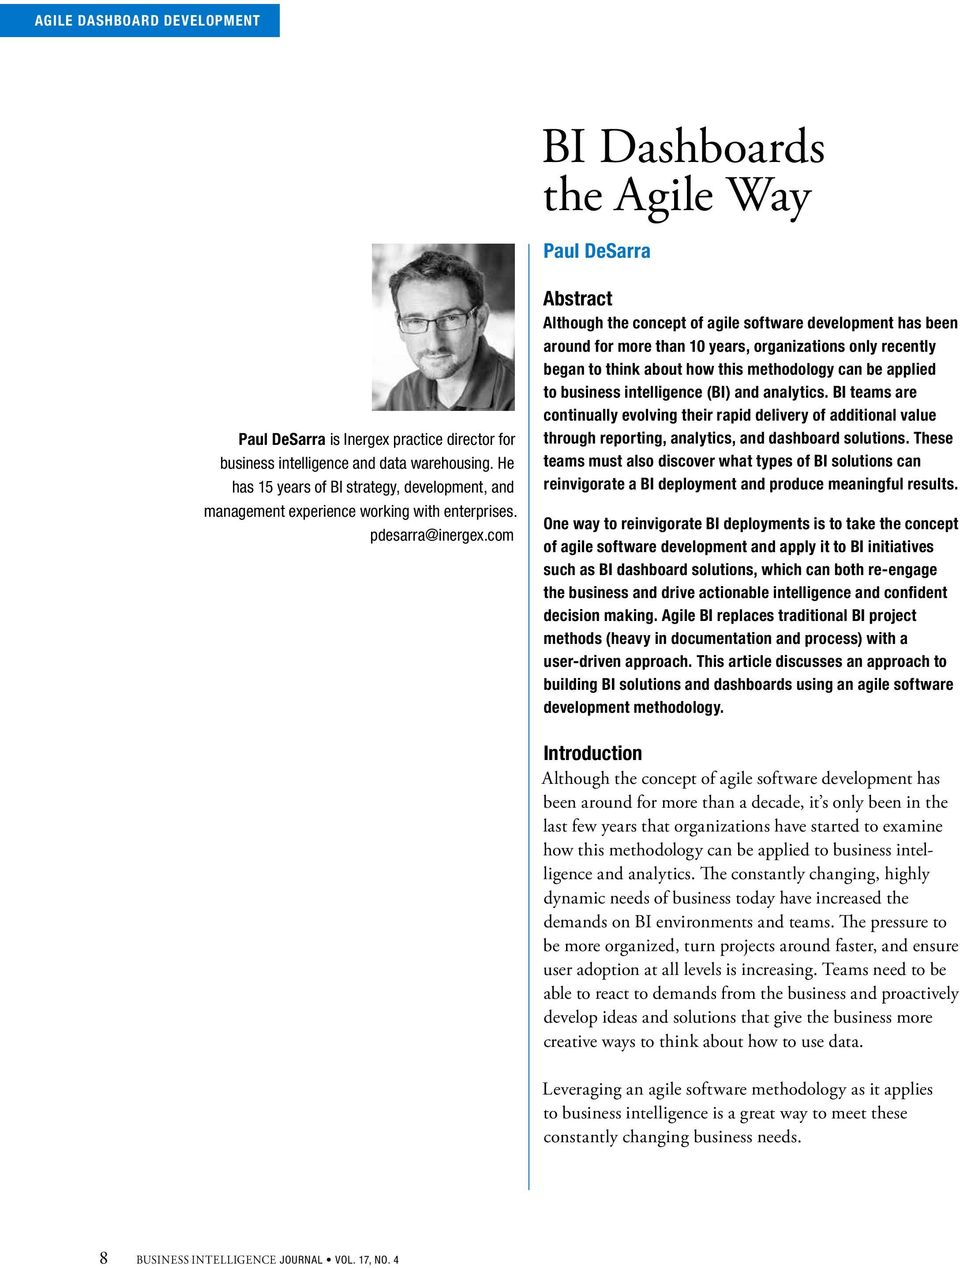 com Abstract Although the concept of agile software development has been around for more than 10 years, organizations only recently began to think about how this methodology can be applied to